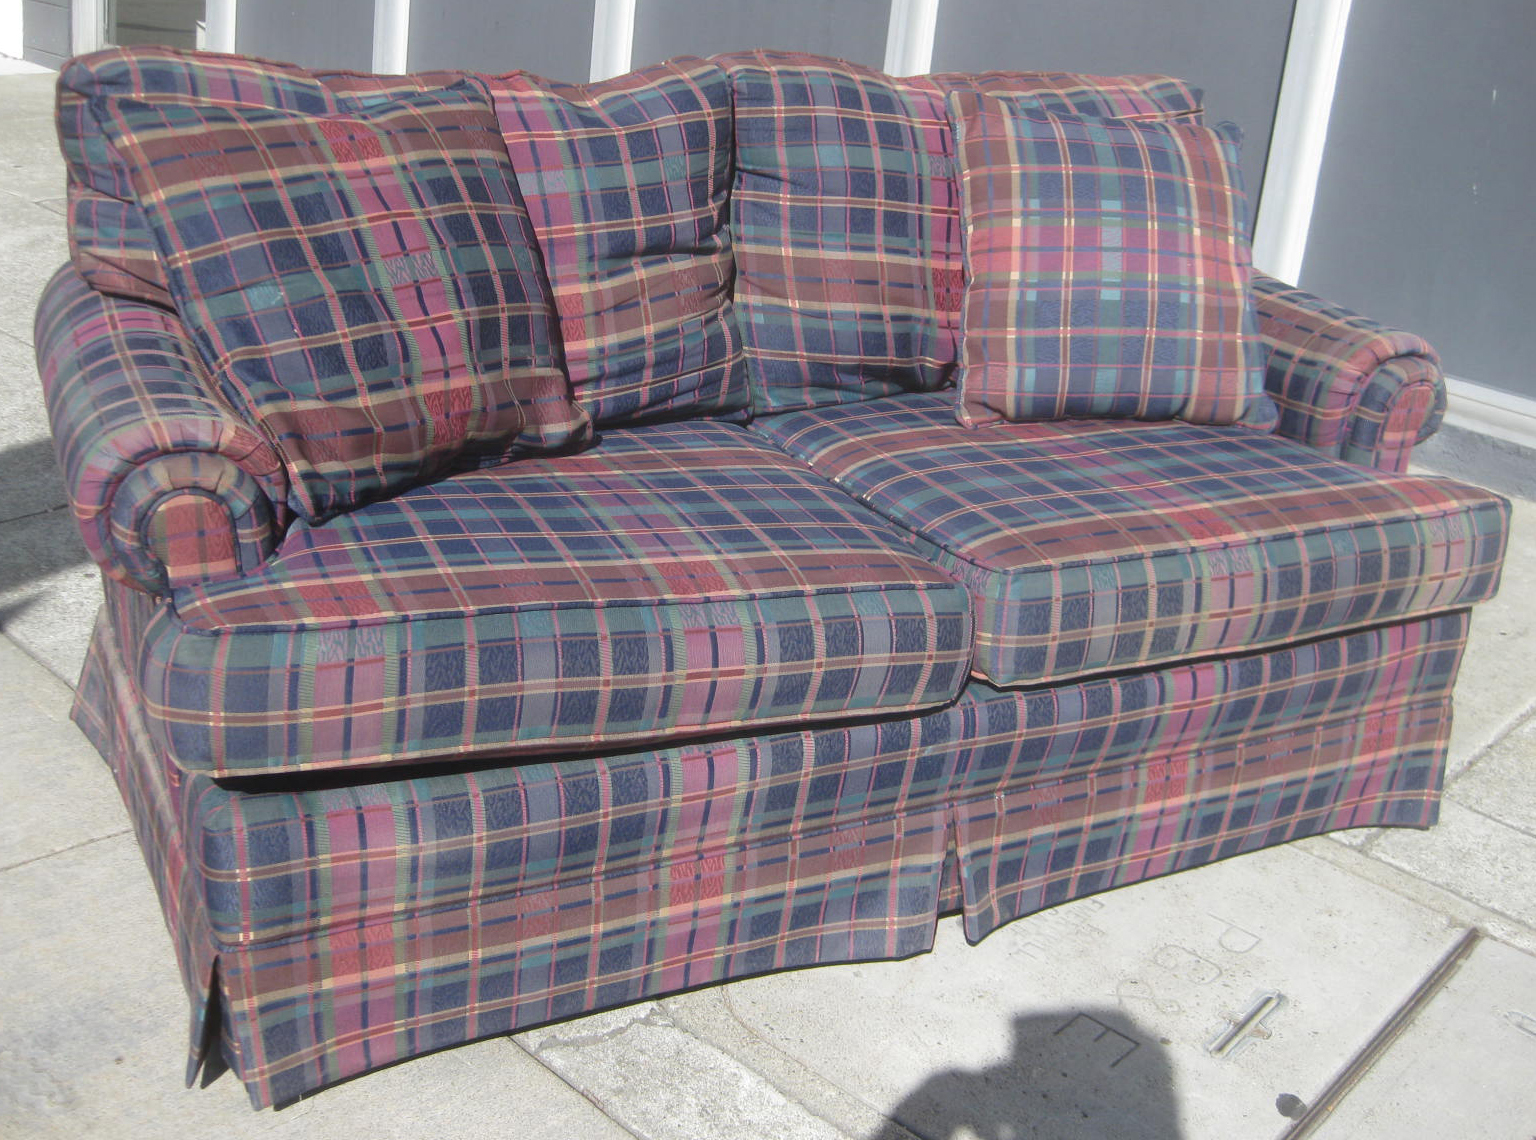 uhuru furniture collectibles sold plaid sofa 50. Black Bedroom Furniture Sets. Home Design Ideas